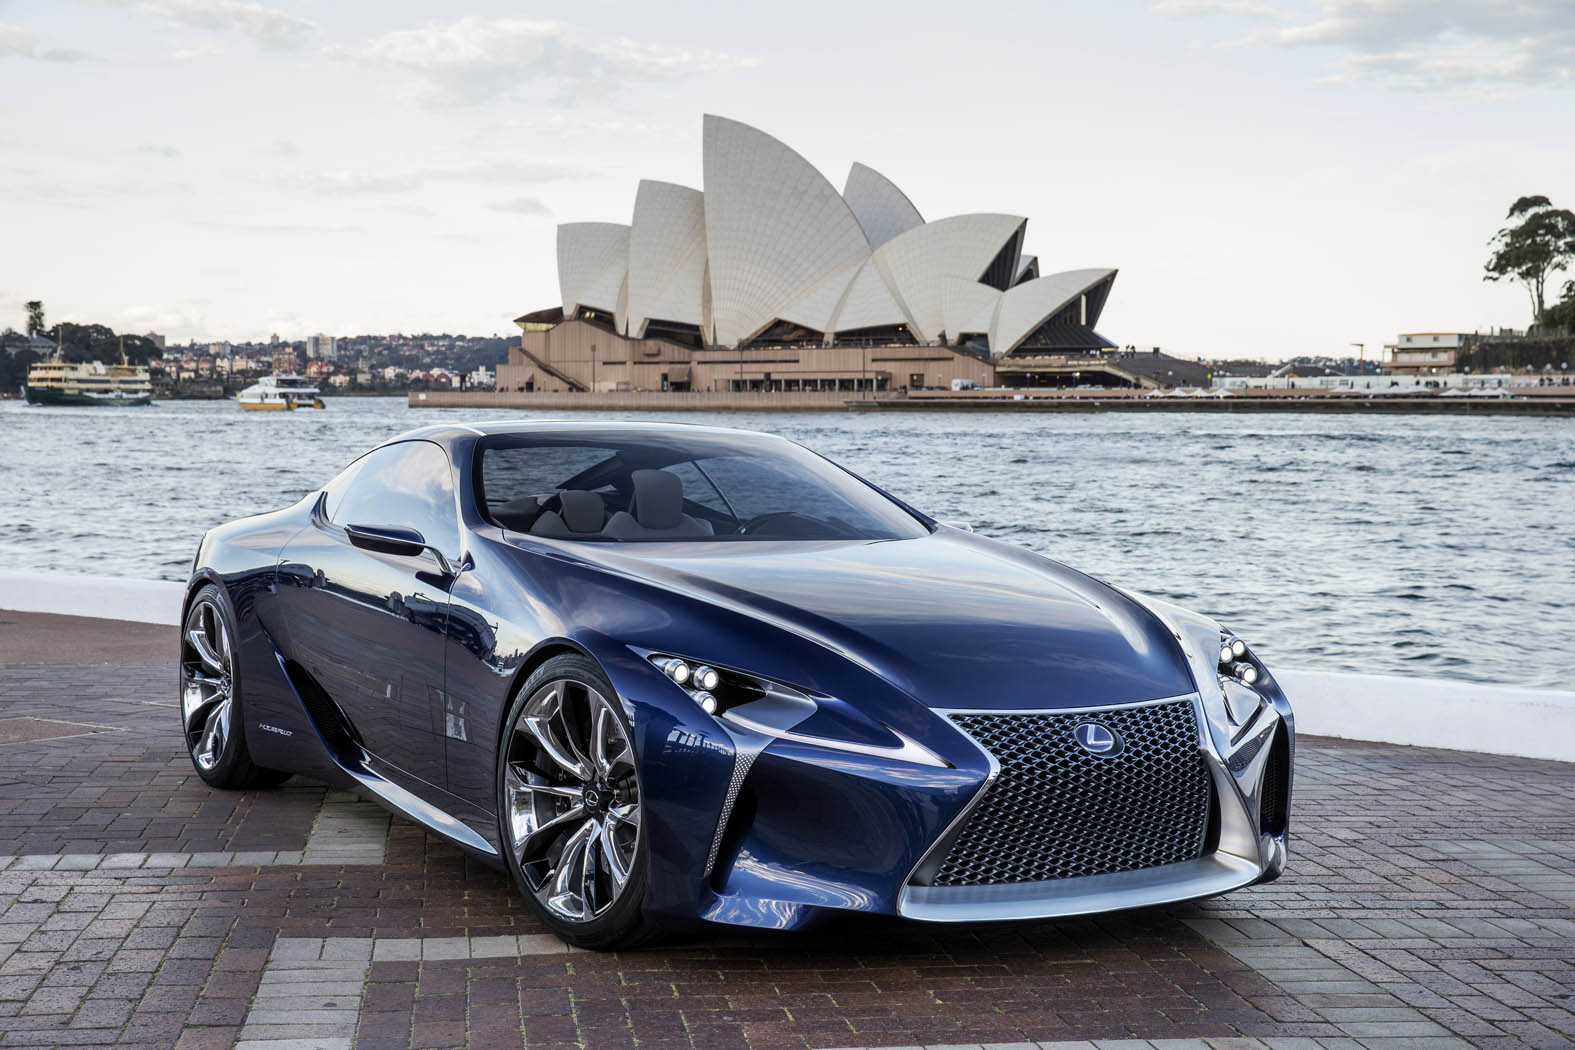 LF-LC 2+2 hybrid sports coupe